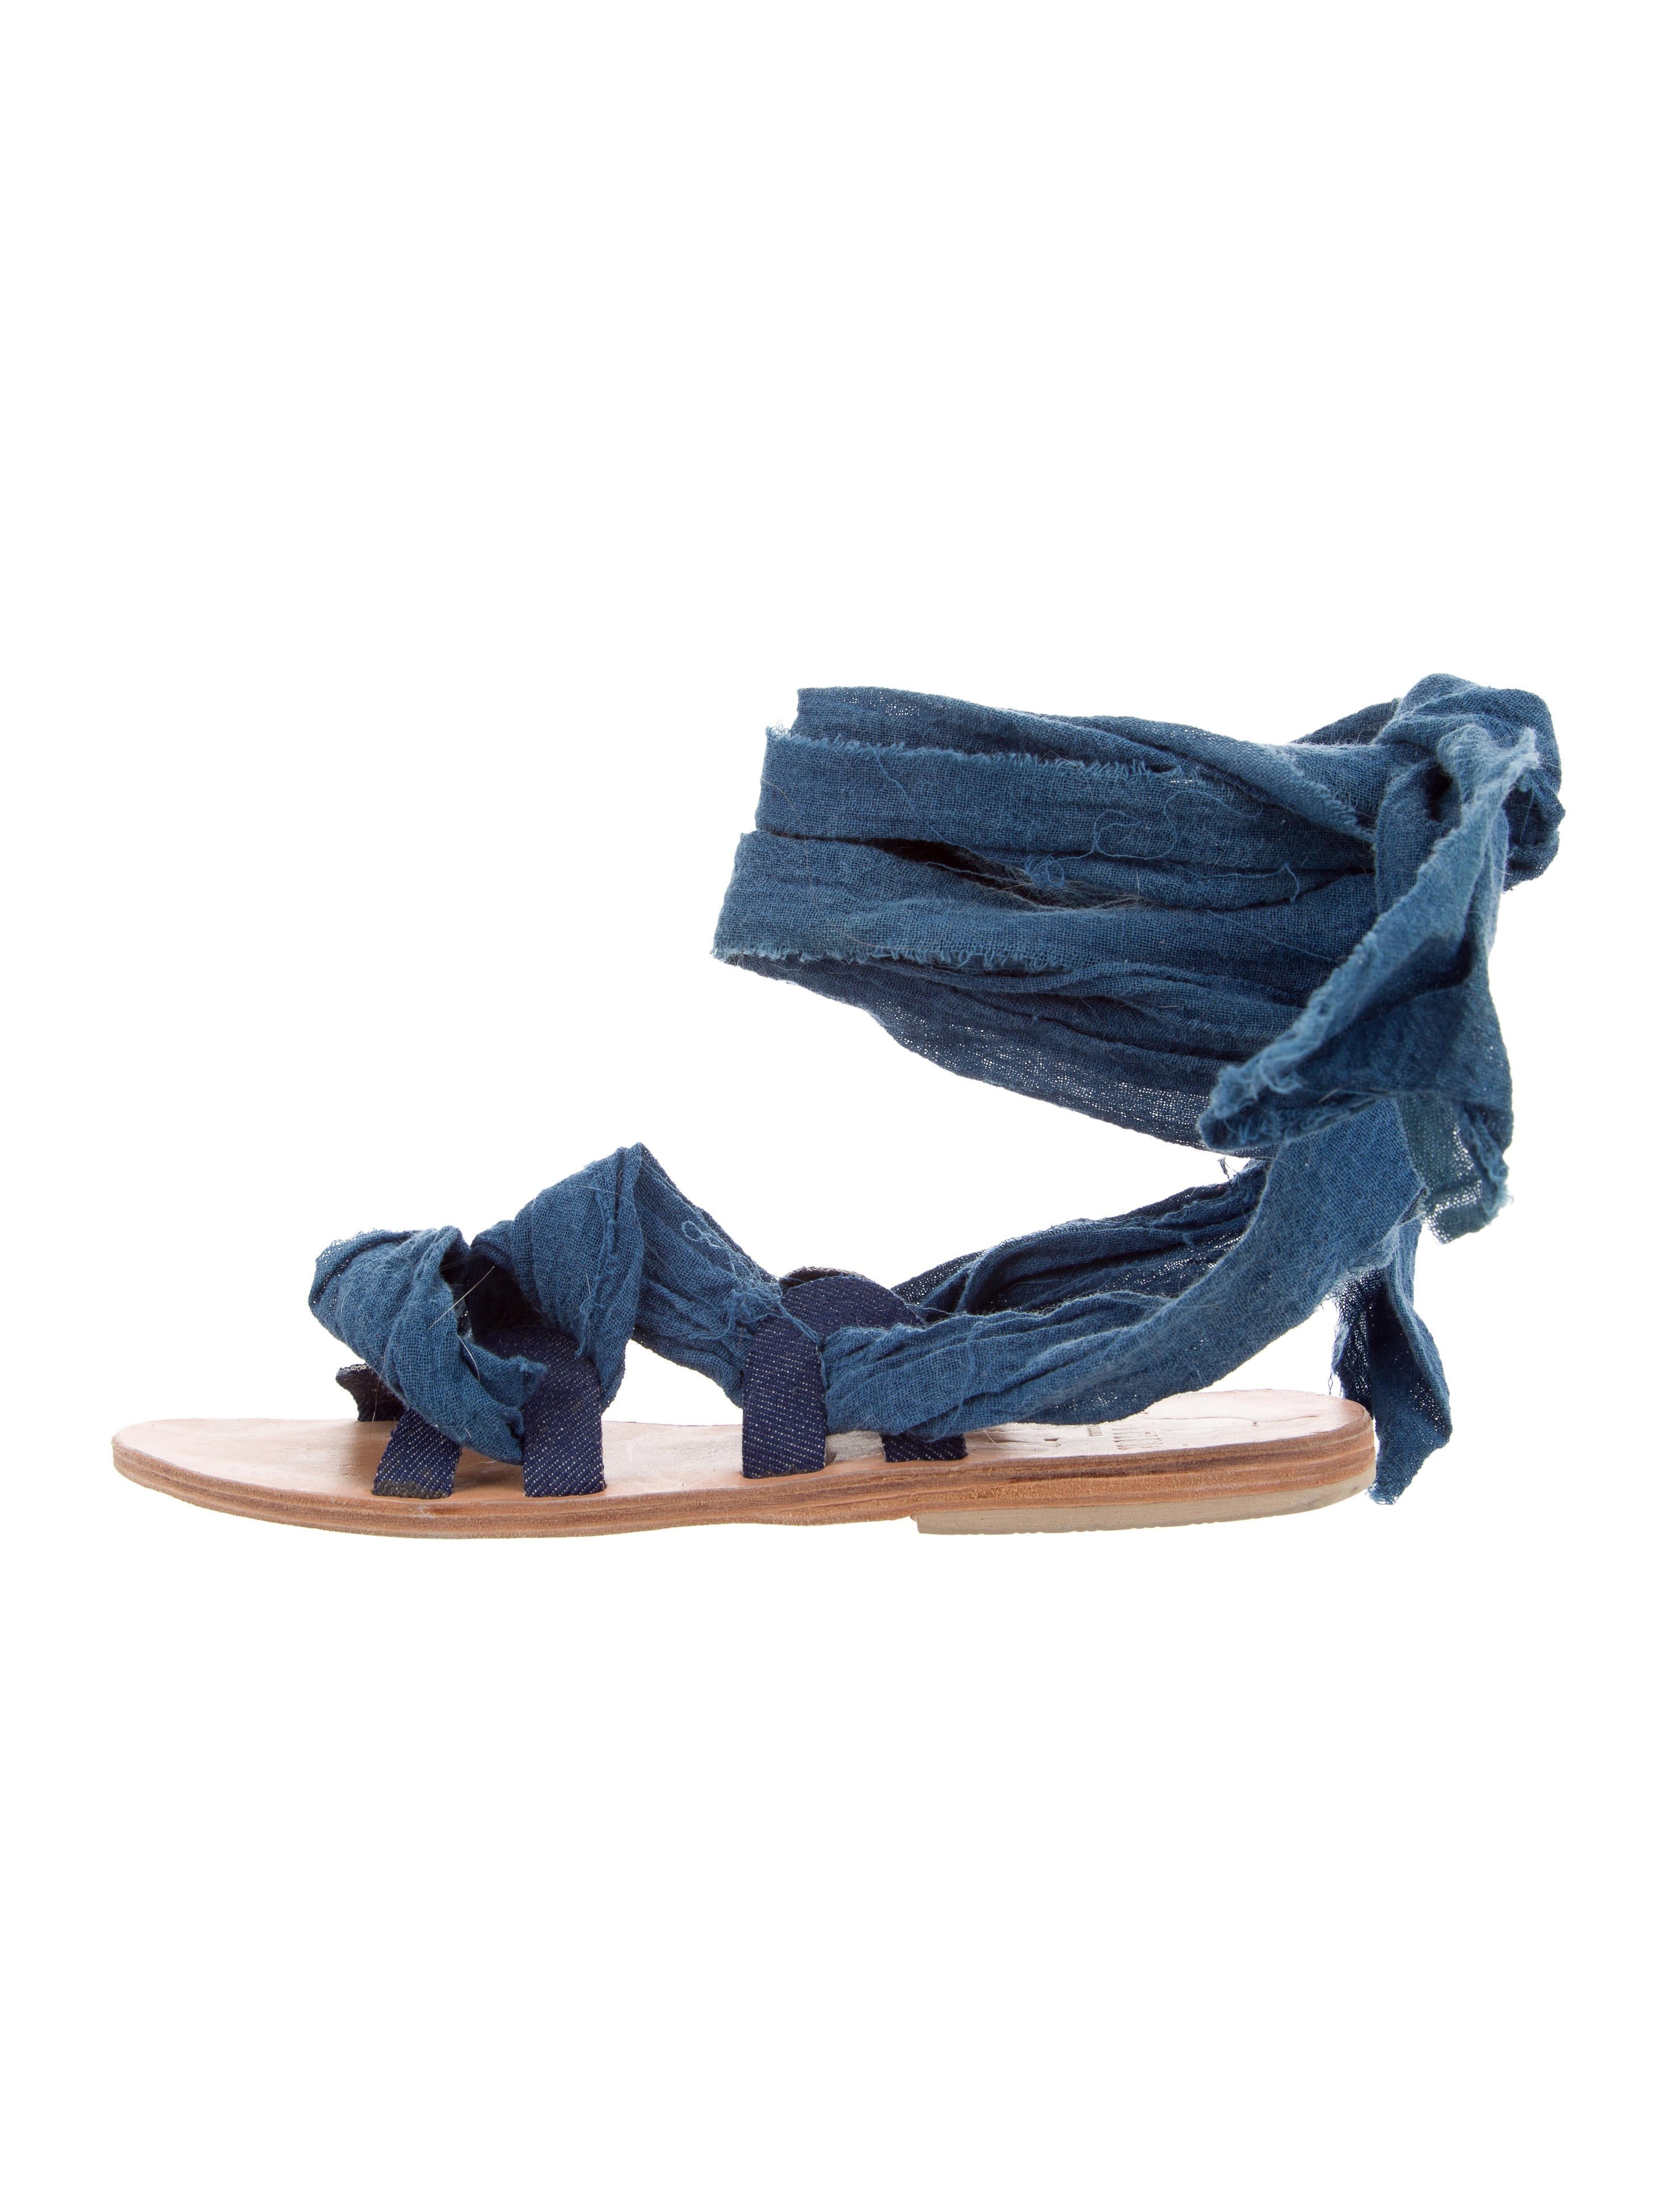 Brother Vellies Denim Wrap-Around Sandals buy cheap manchester great sale outlet 2015 extremely cheap online Pxf0yMrHG9